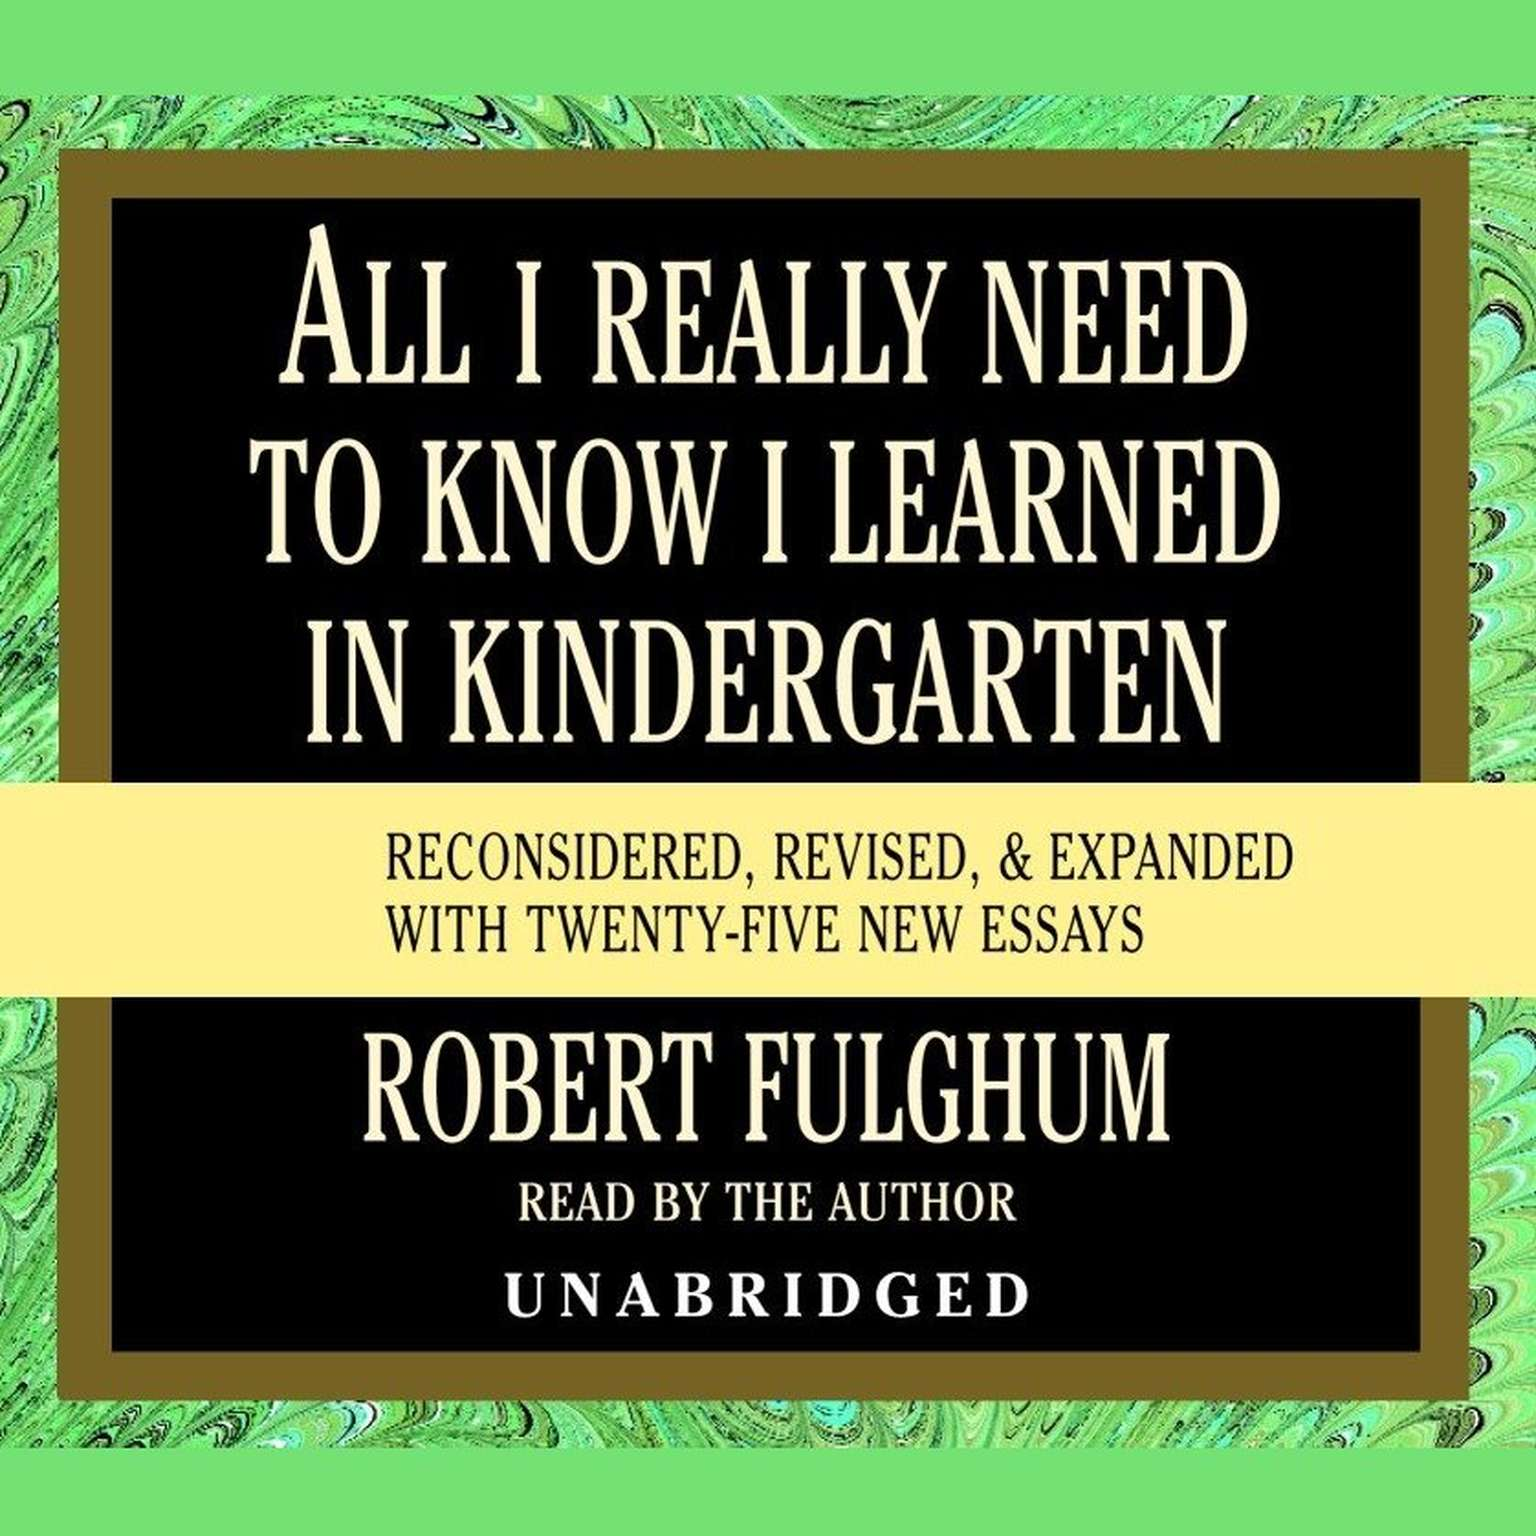 Printable All I Really Need to Know I Learned in Kindergarten: Fifteenth Anniversary Edition Reconsidered, Revised, & Expanded With Twenty-Five New Essays Audiobook Cover Art